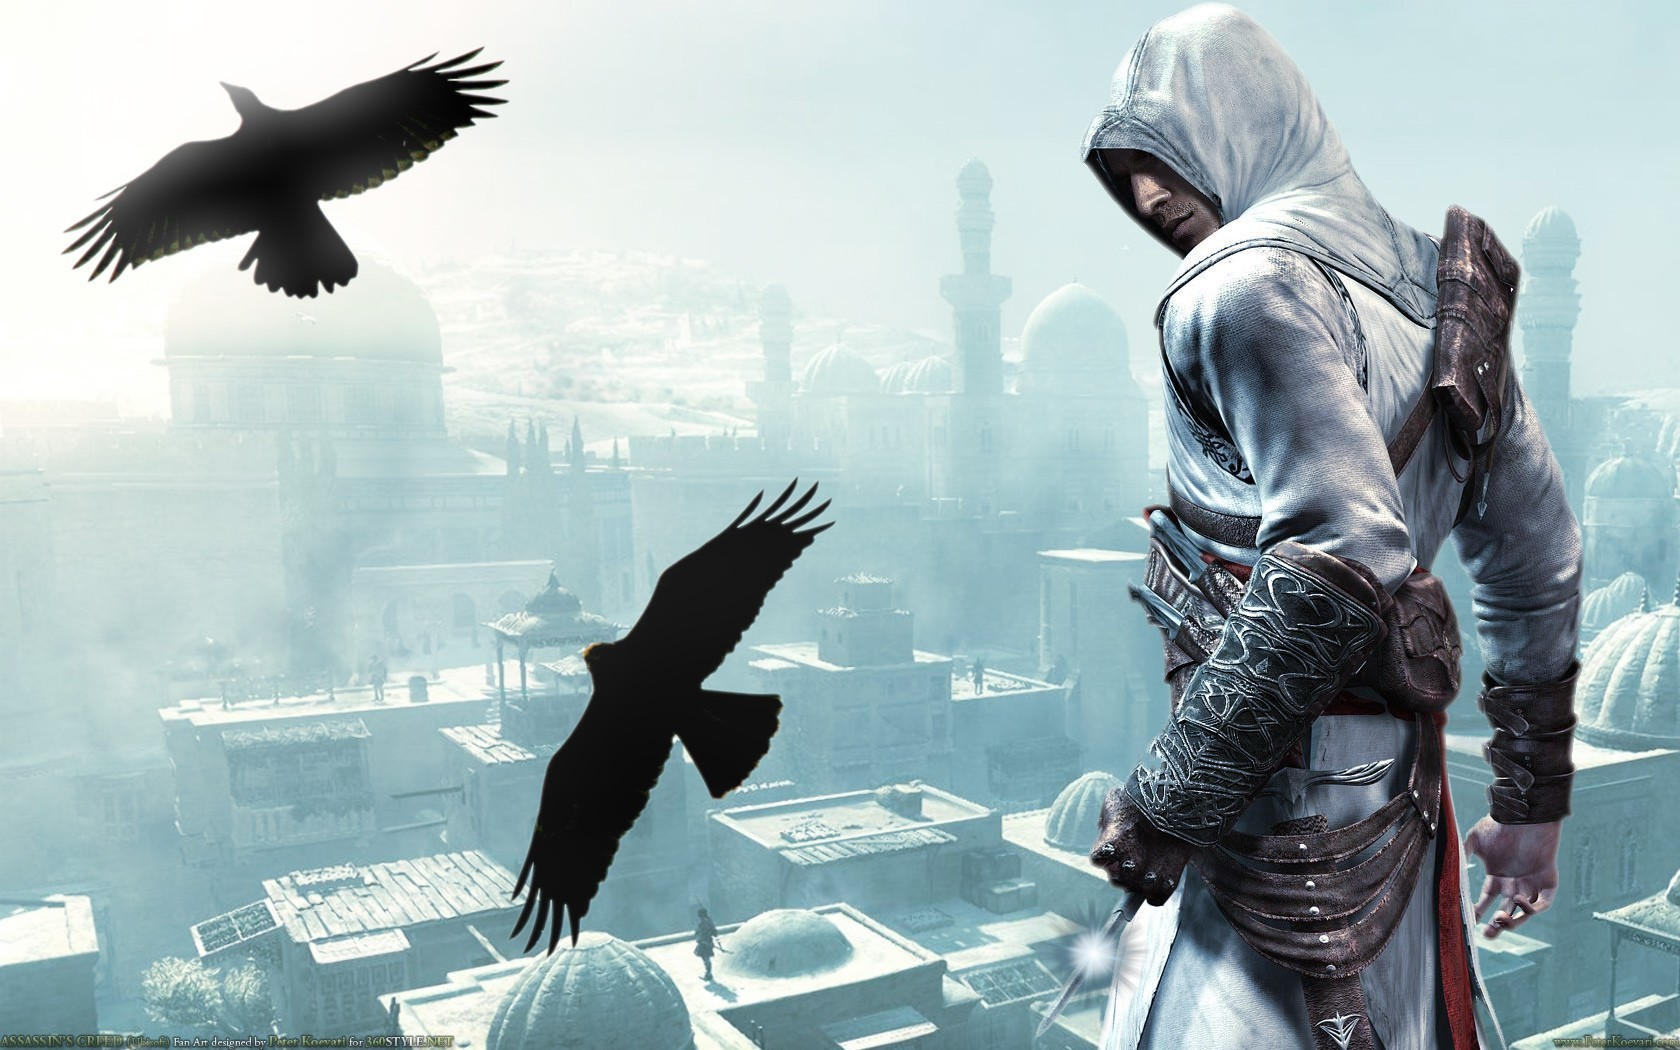 Altair ibn la ahad HD Wallpaper